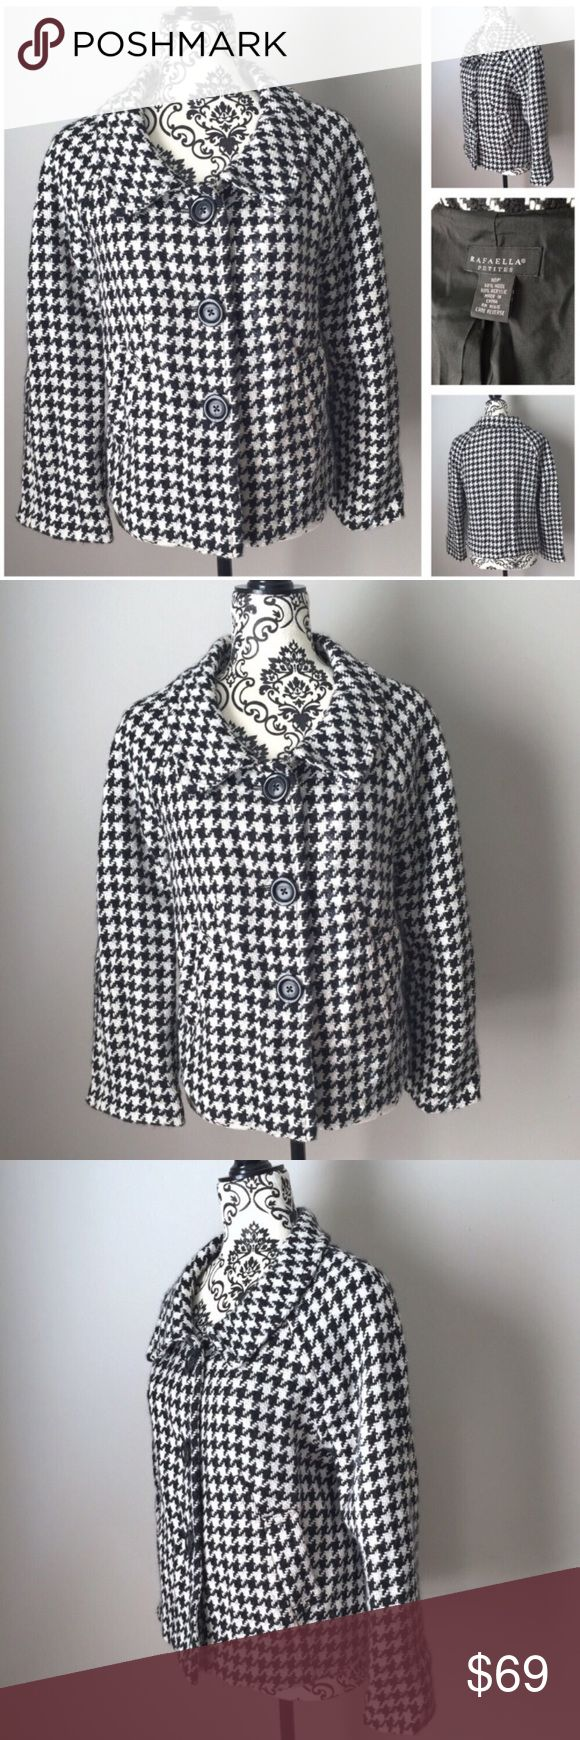 """Classic black and white houndstooth lined coat Rafaella black and white houndstooth lightweight coat or jacket.  Long sleeves - approximately 15"""" from cuff to armpit. Armpit to armpit - 20"""" laid flat.  Length from top of shoulder to hem - 22"""".  Has two working side pockets.  Fully lined.  50% wool / 50% acrylic is dry clean only.  Worn 2-3x and dry cleaned - still has dry cleaning tag attached inside left wrist area as shown.  EUC with no rips, stains or tears! Rafaella Jackets & Coats"""